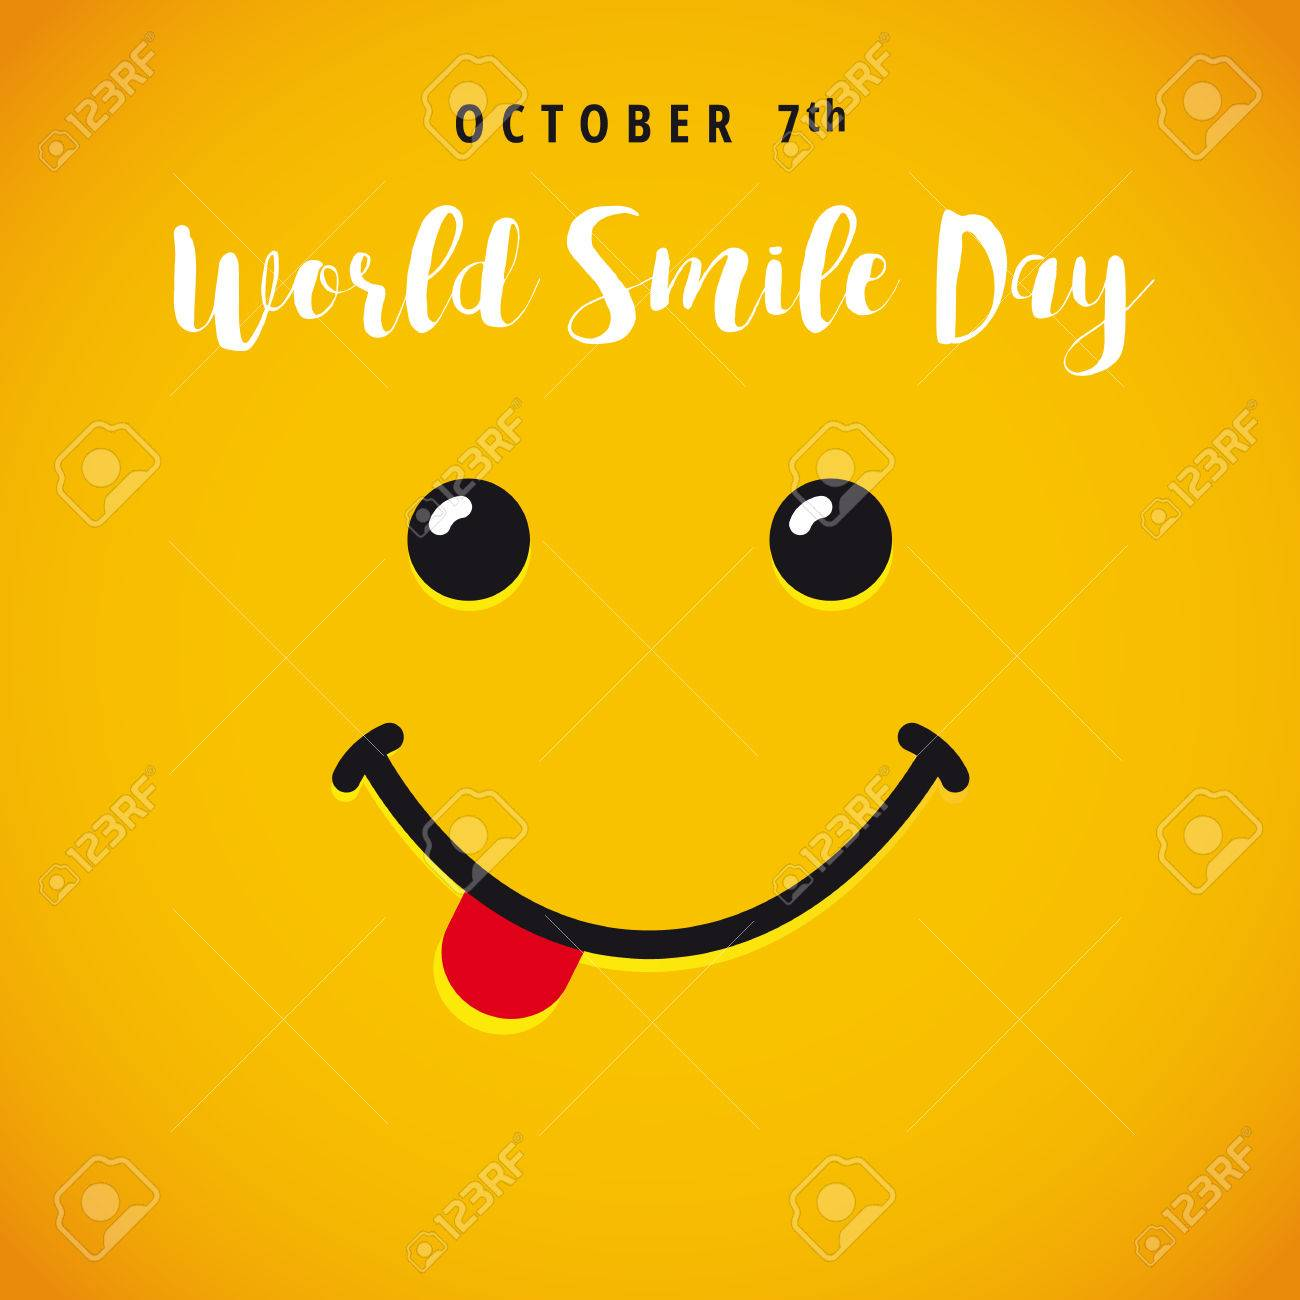 World Smile Day banner. Smile with tongue and lettering World Smile Day on yellow background - 63373231